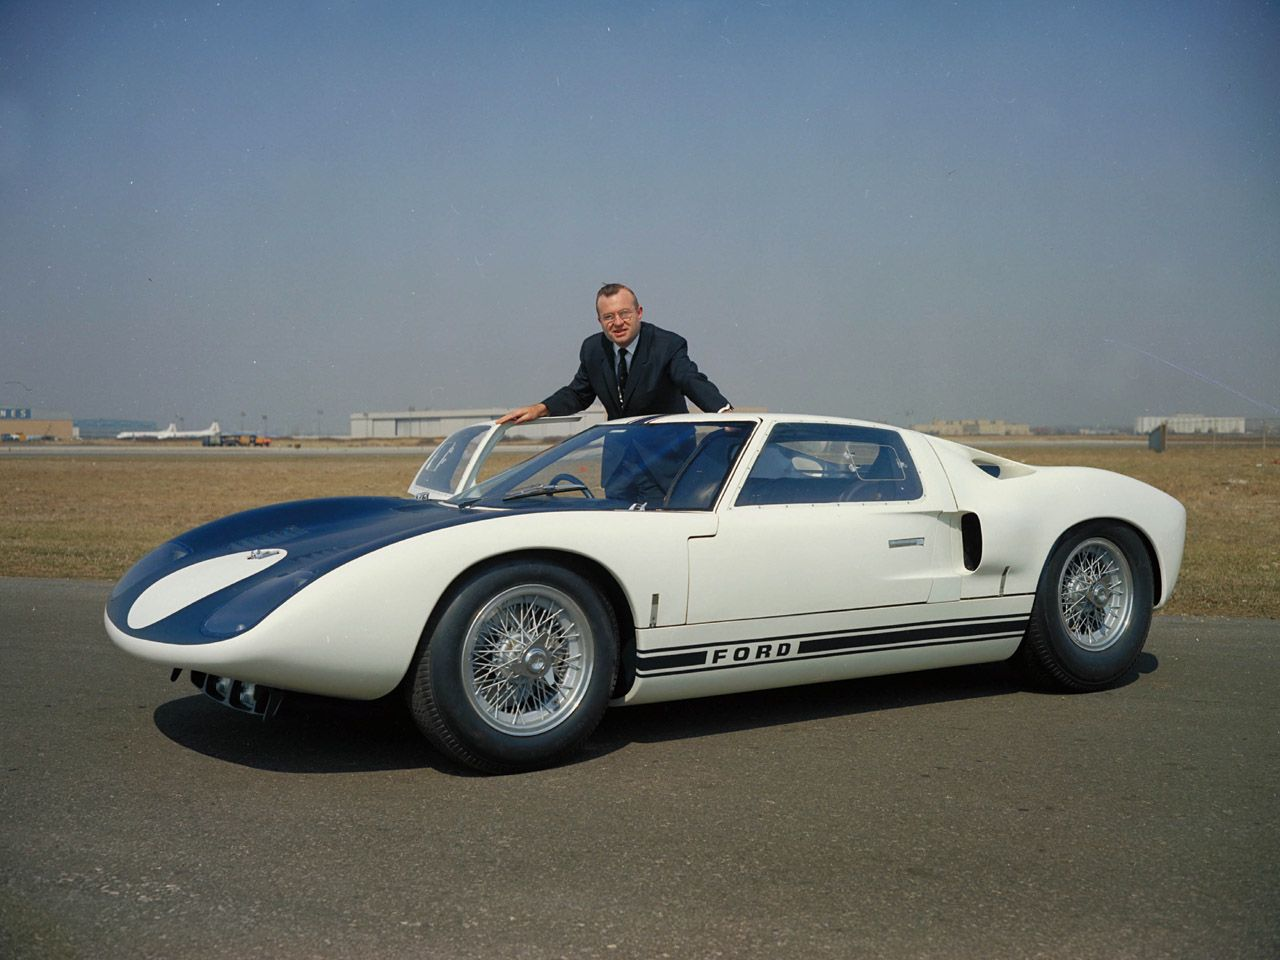 1964 Ford GT Concept